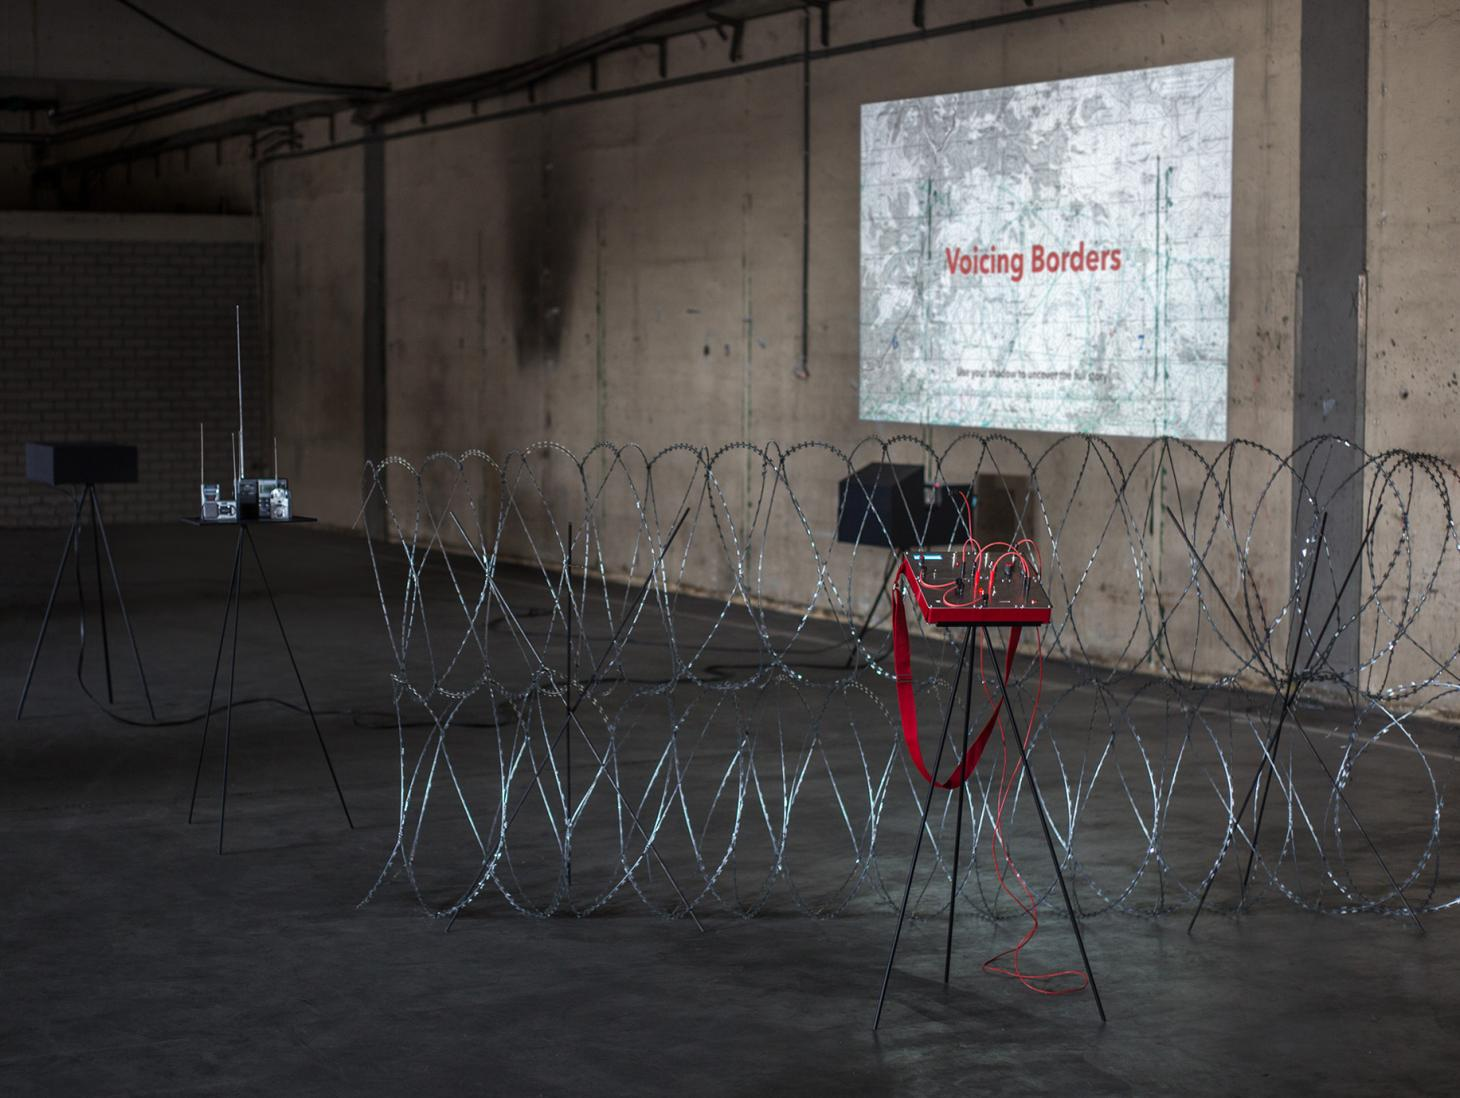 Installation Voicing Borders by Irakli Sabekia, featuring razor wire in a bare room